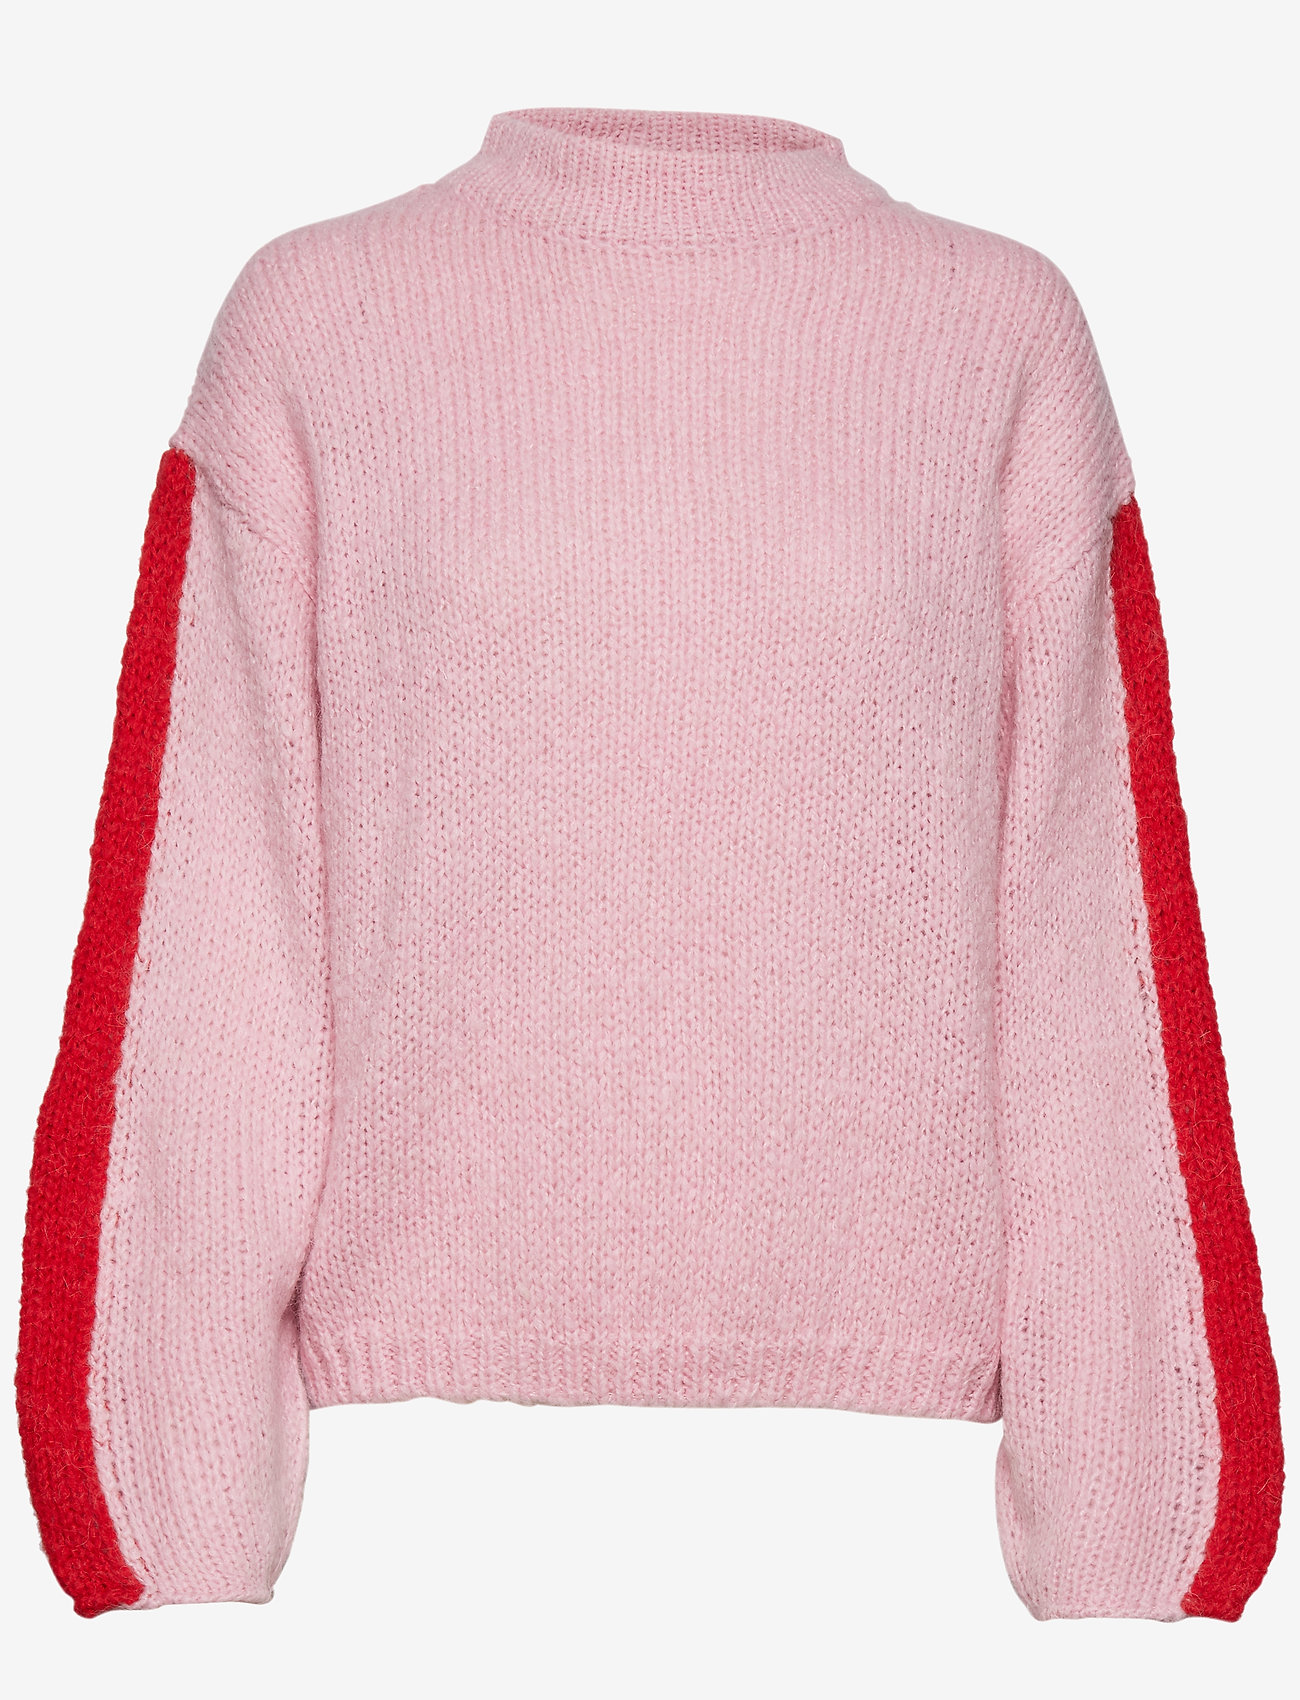 Lee Jeans - CHUNKY KNIT - gensere - frost pink - 0